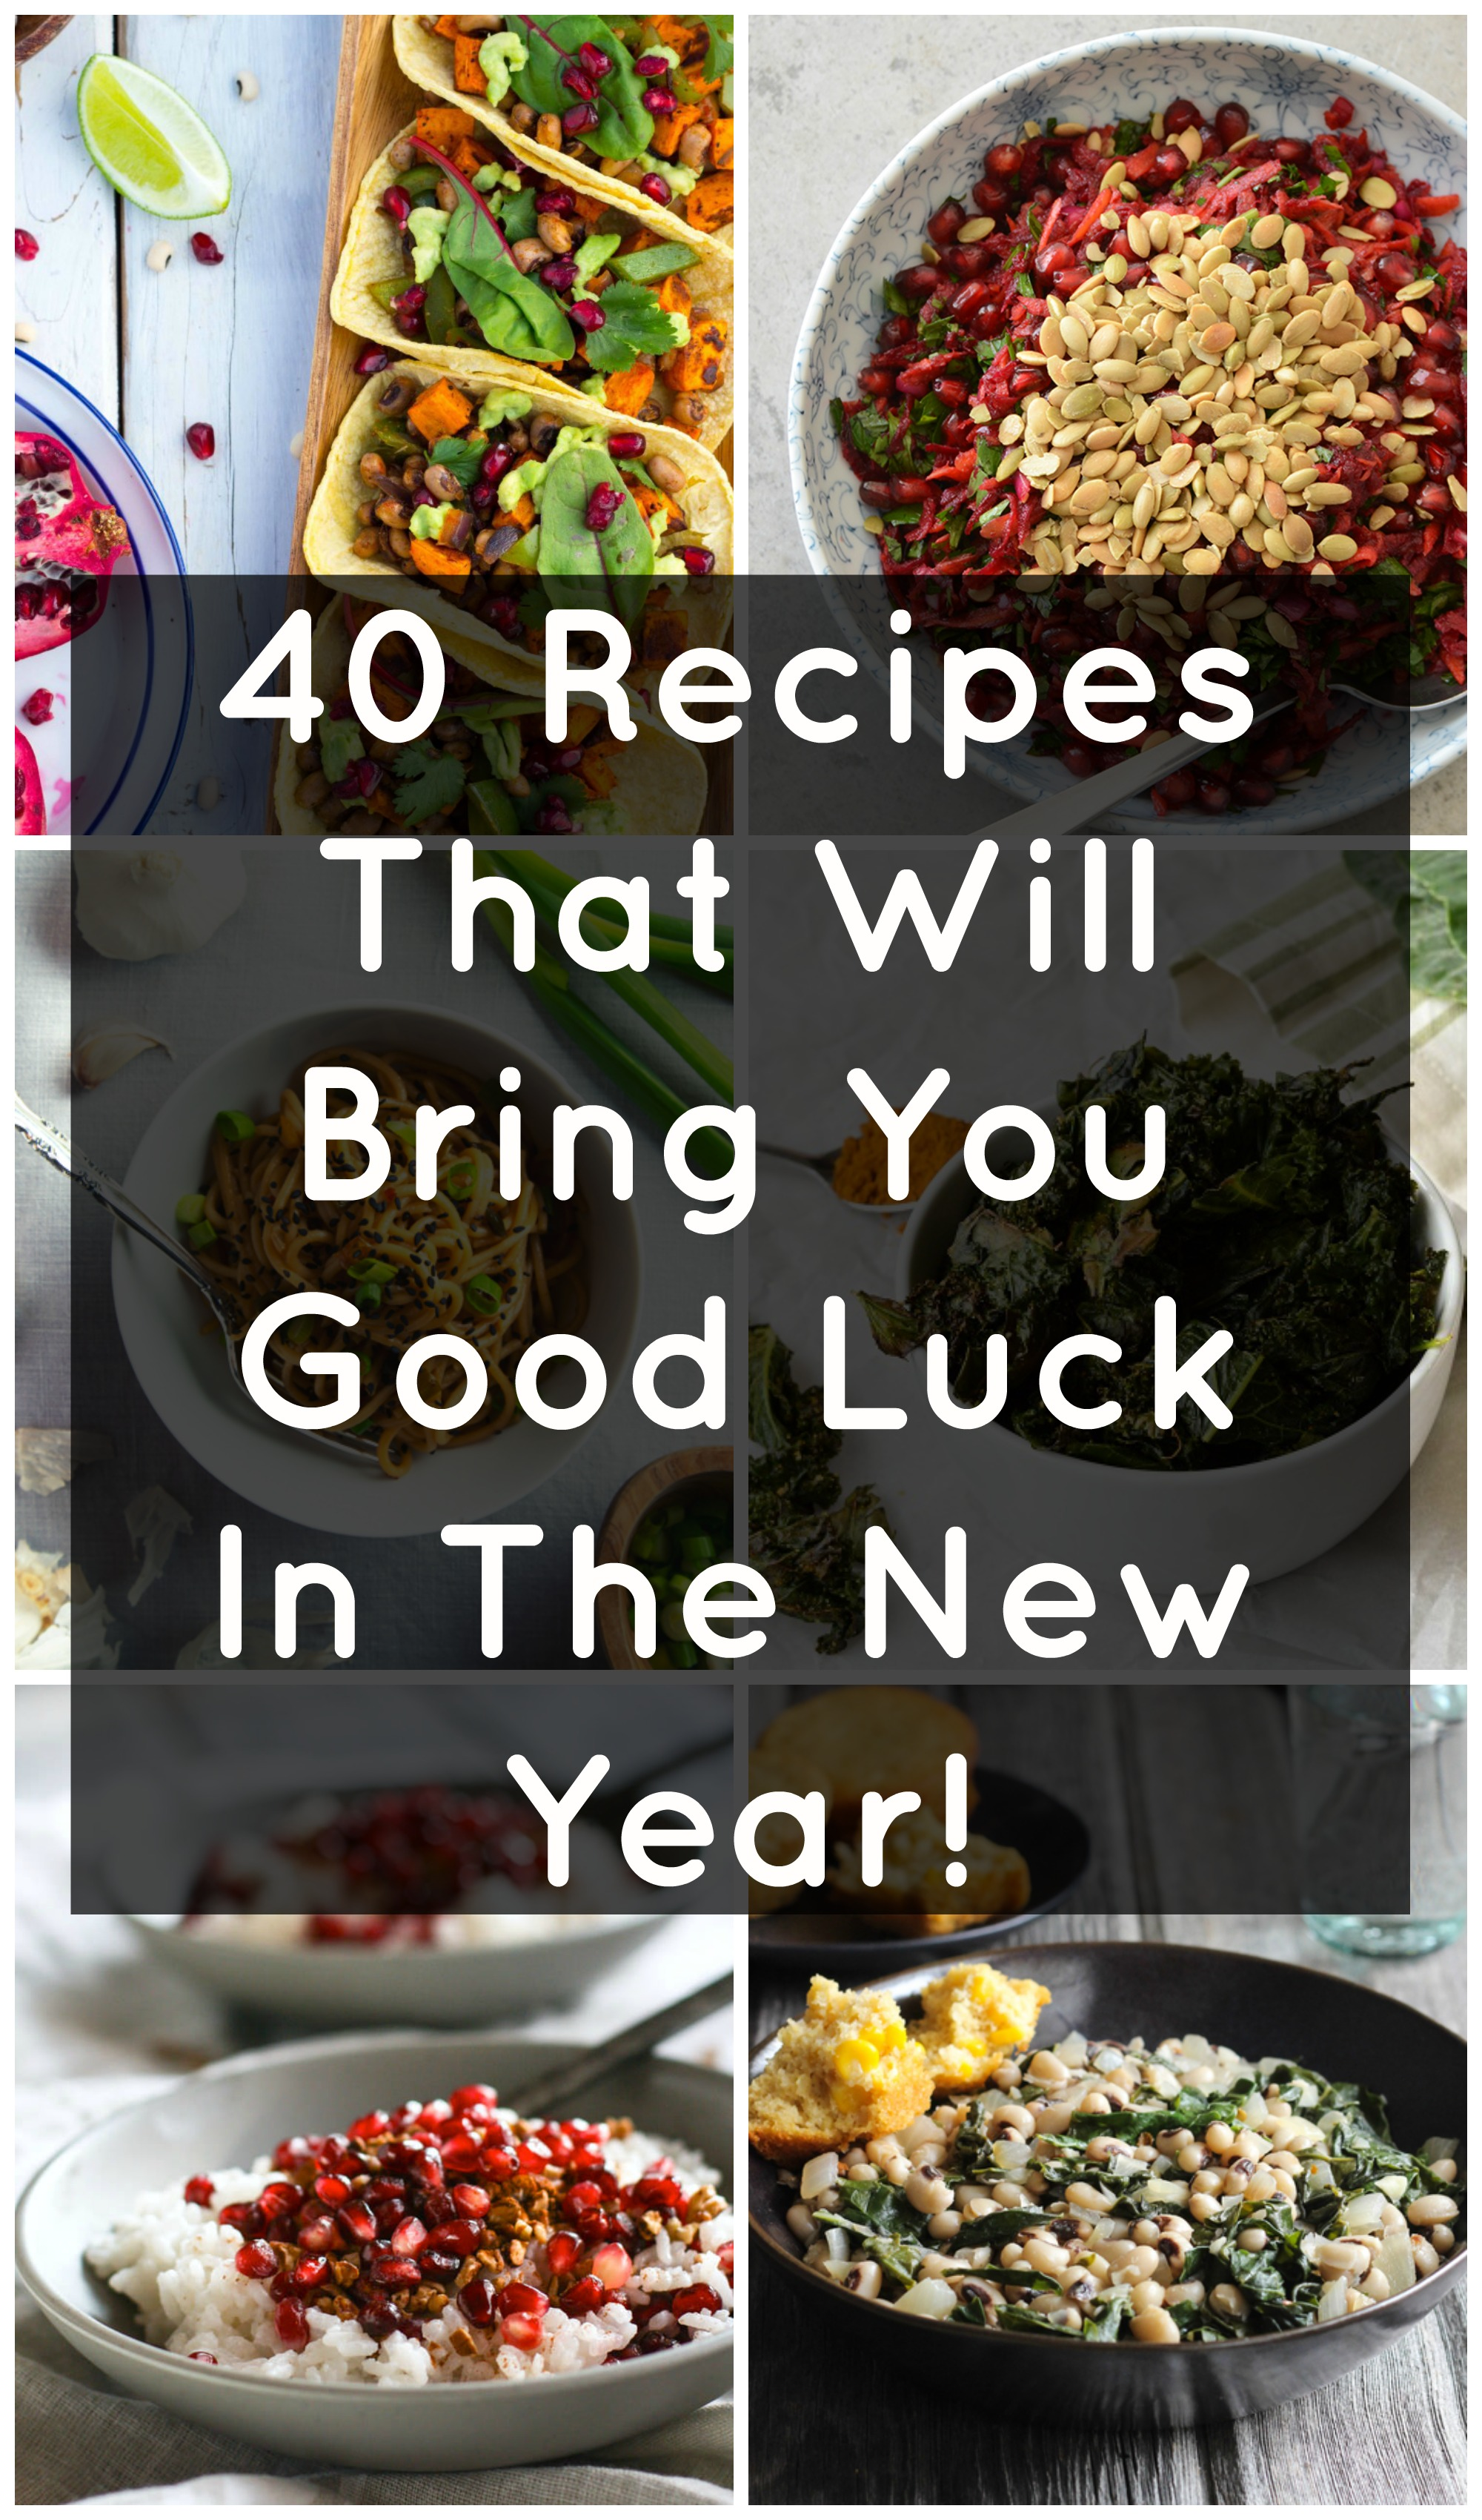 Year At A Glance Inspire2rise Turns 3 Years Old: 40 Recipes That Will Bring You Good Luck In The New Year